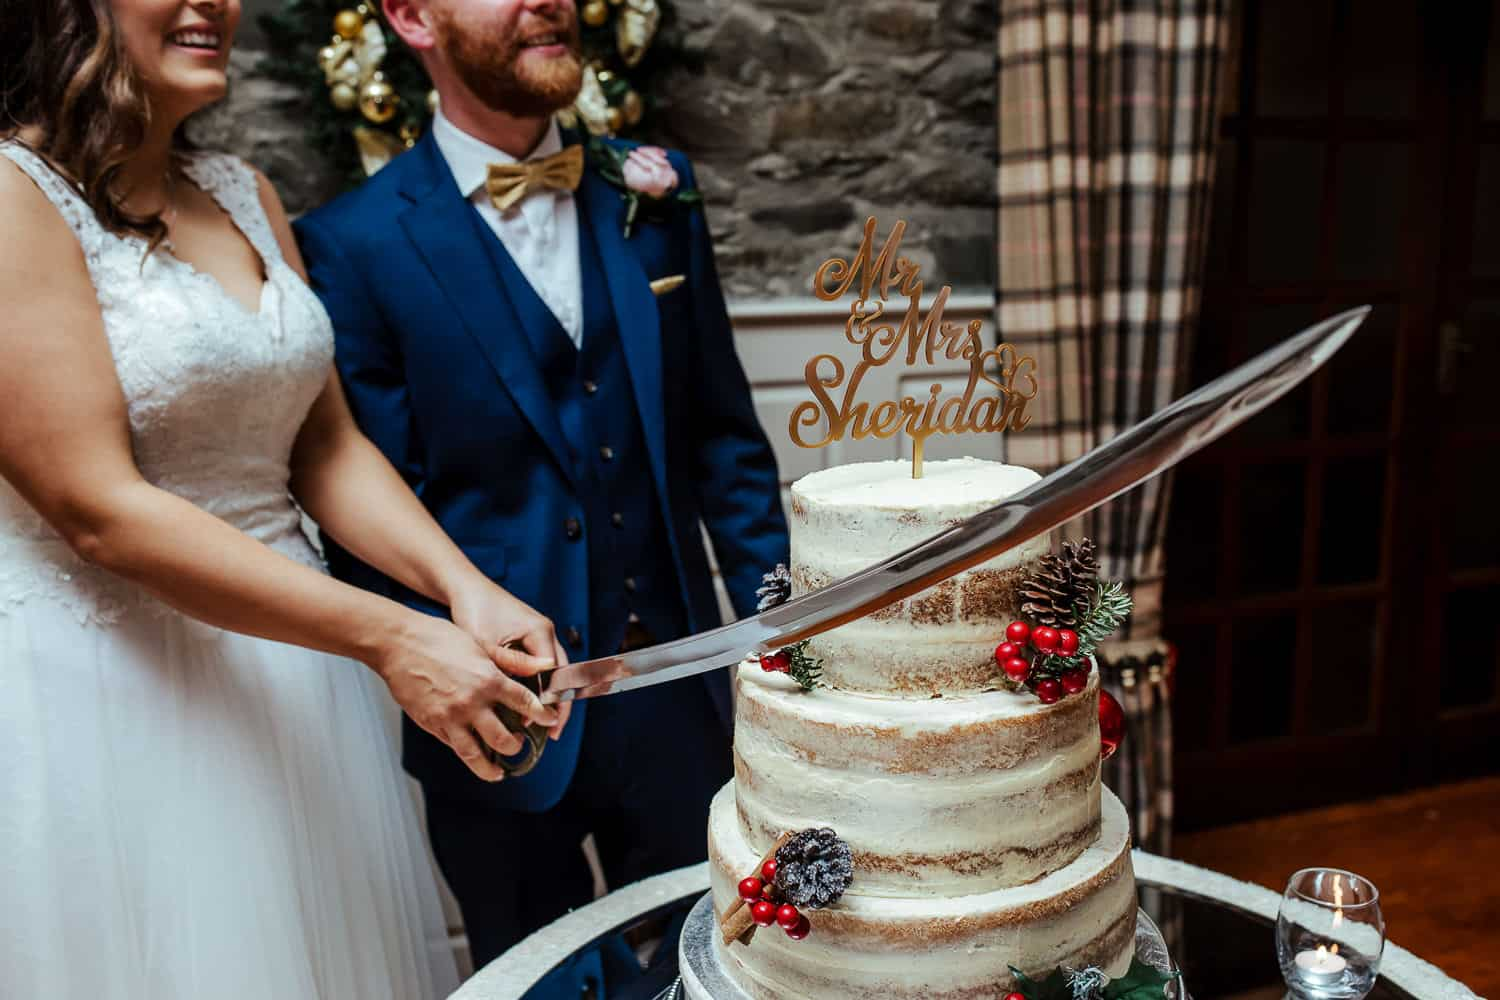 cake cutting with a real sword at darver castle wedding